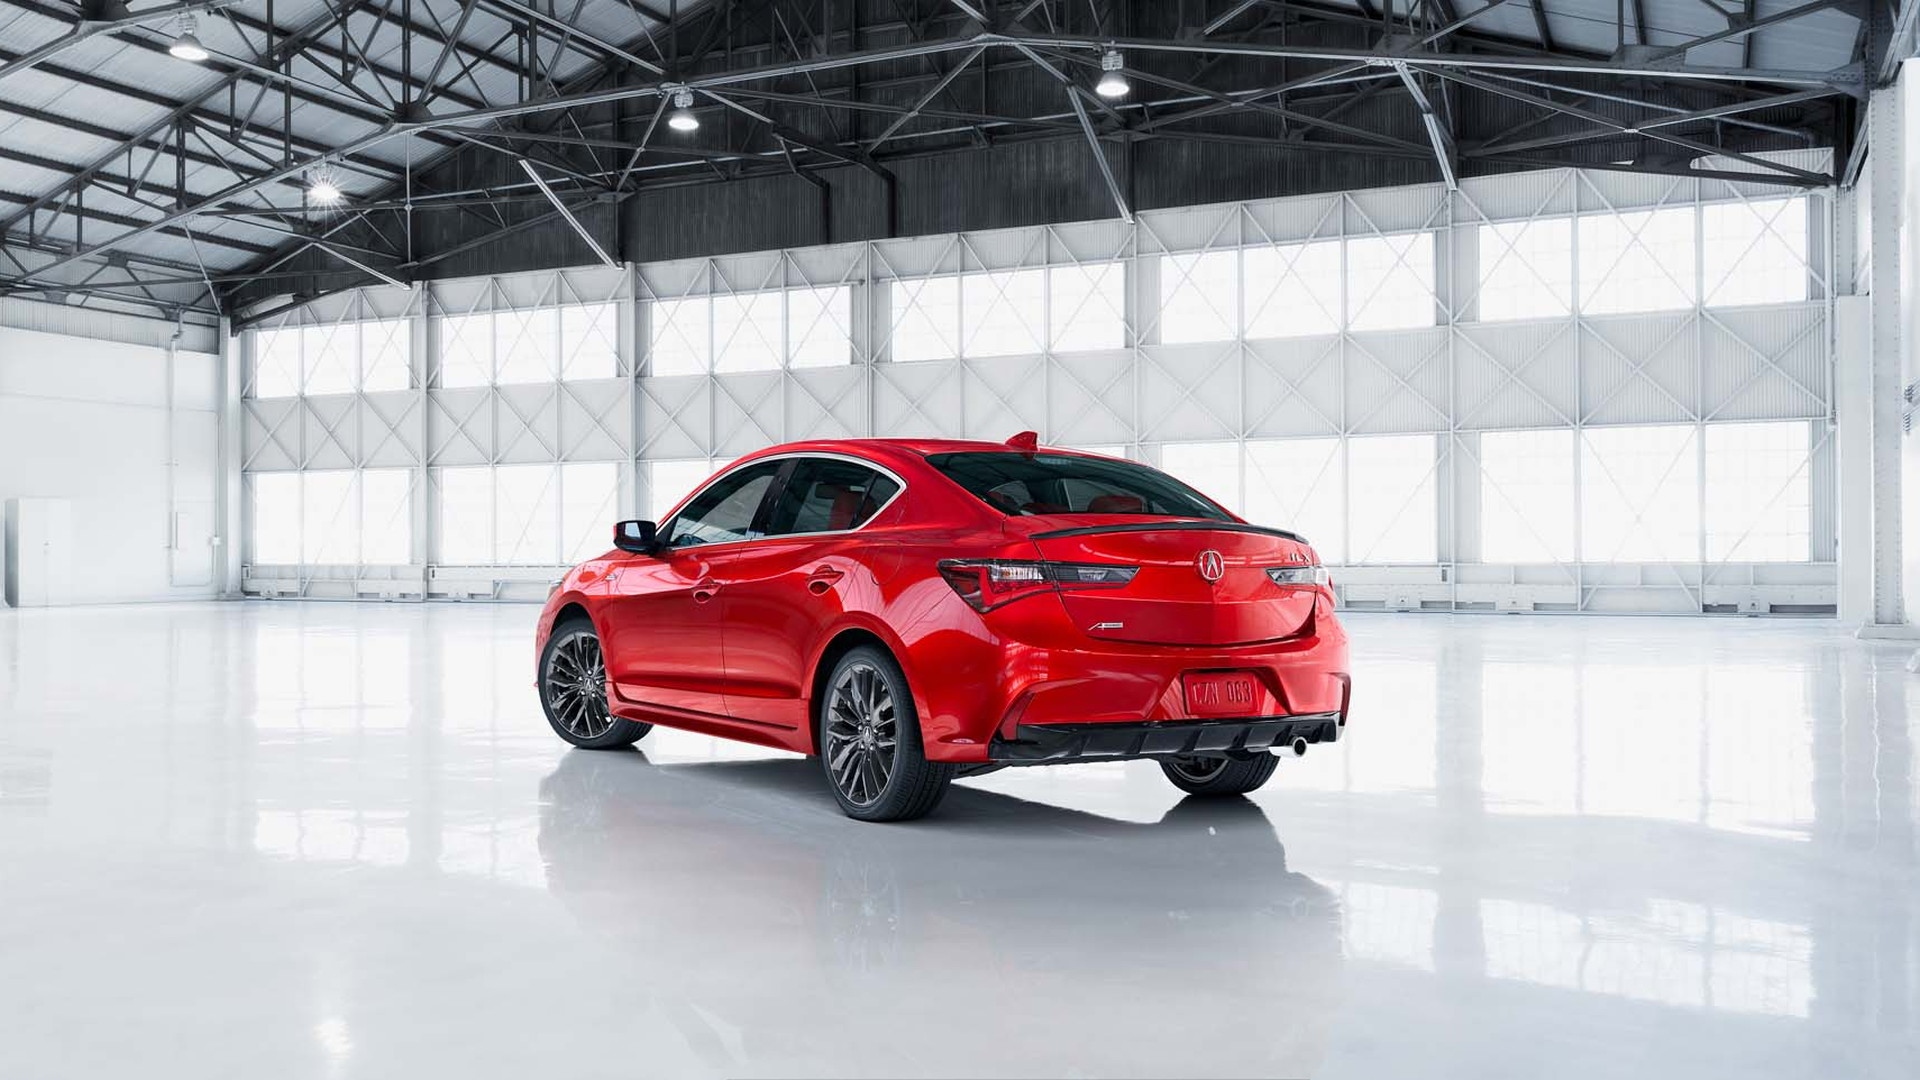 2019 Acura Ilx Brings Brand S New Design Language 2 200 Price Cut